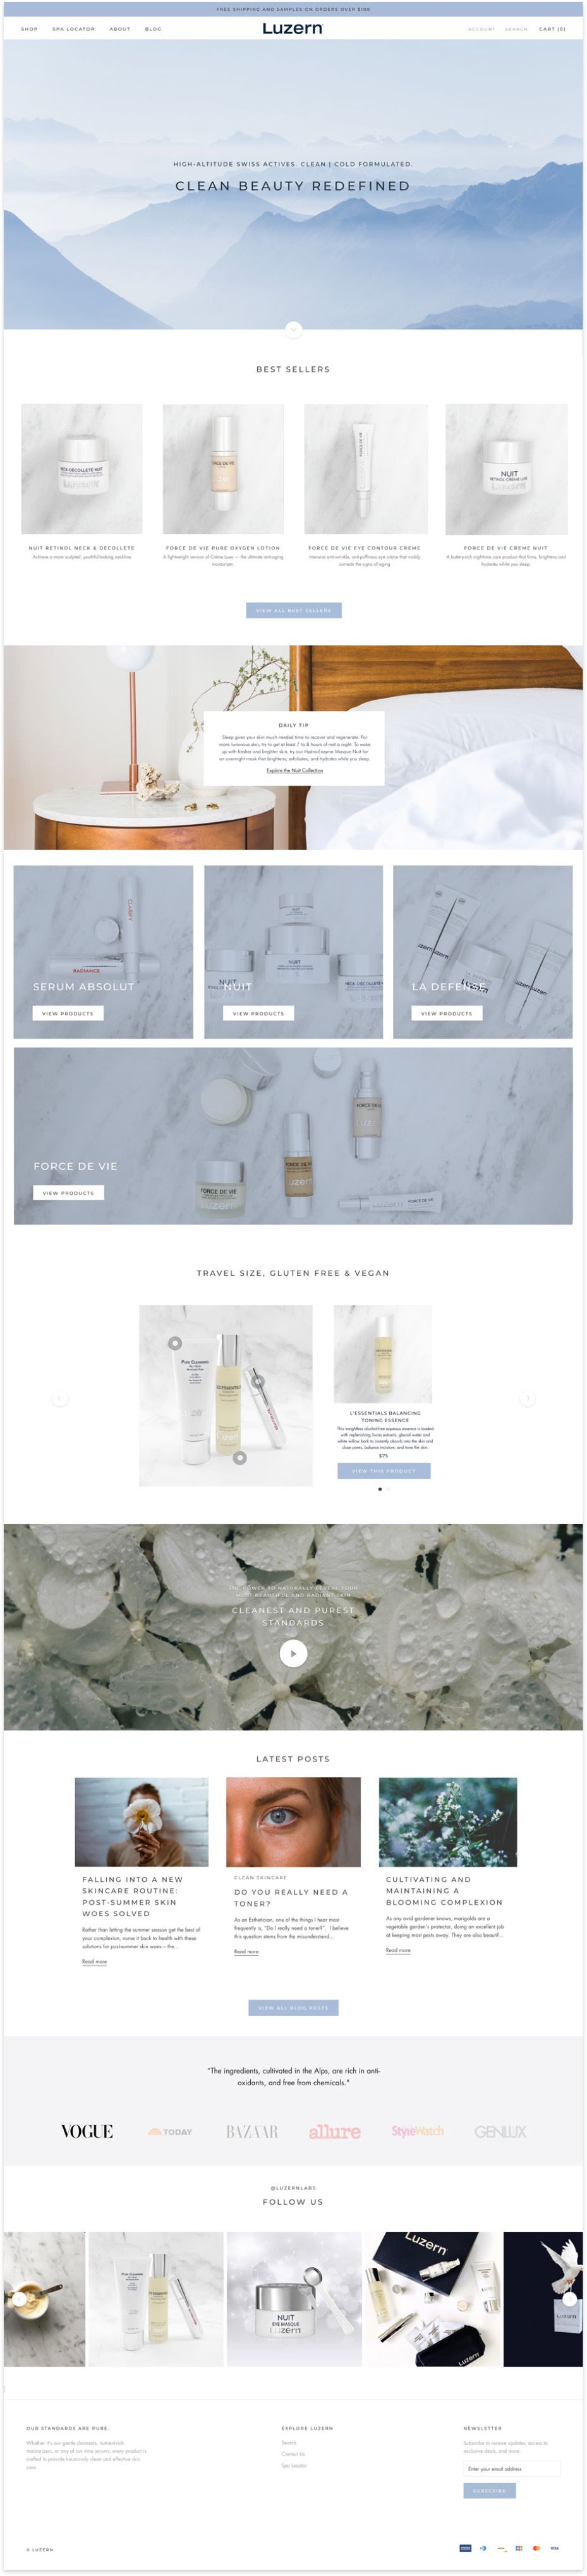 Luzern's redesigned homepage that features beautiful photography and clean design to give a luxury look and feel for their high-end skin care lines.